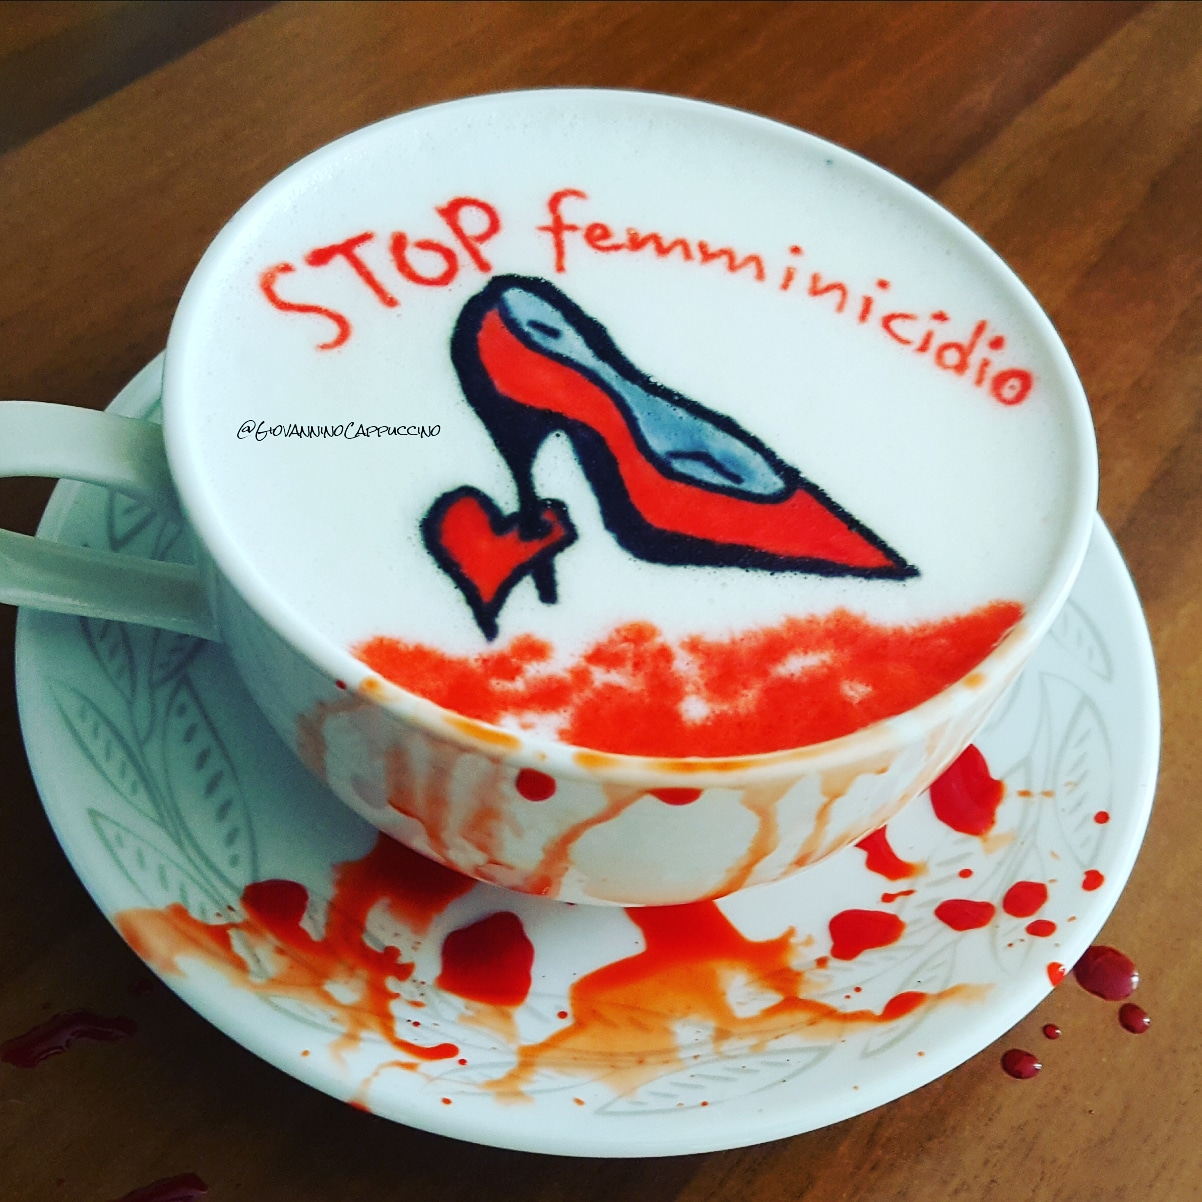 latte-art-giovannino-cappuccino-femminicidio